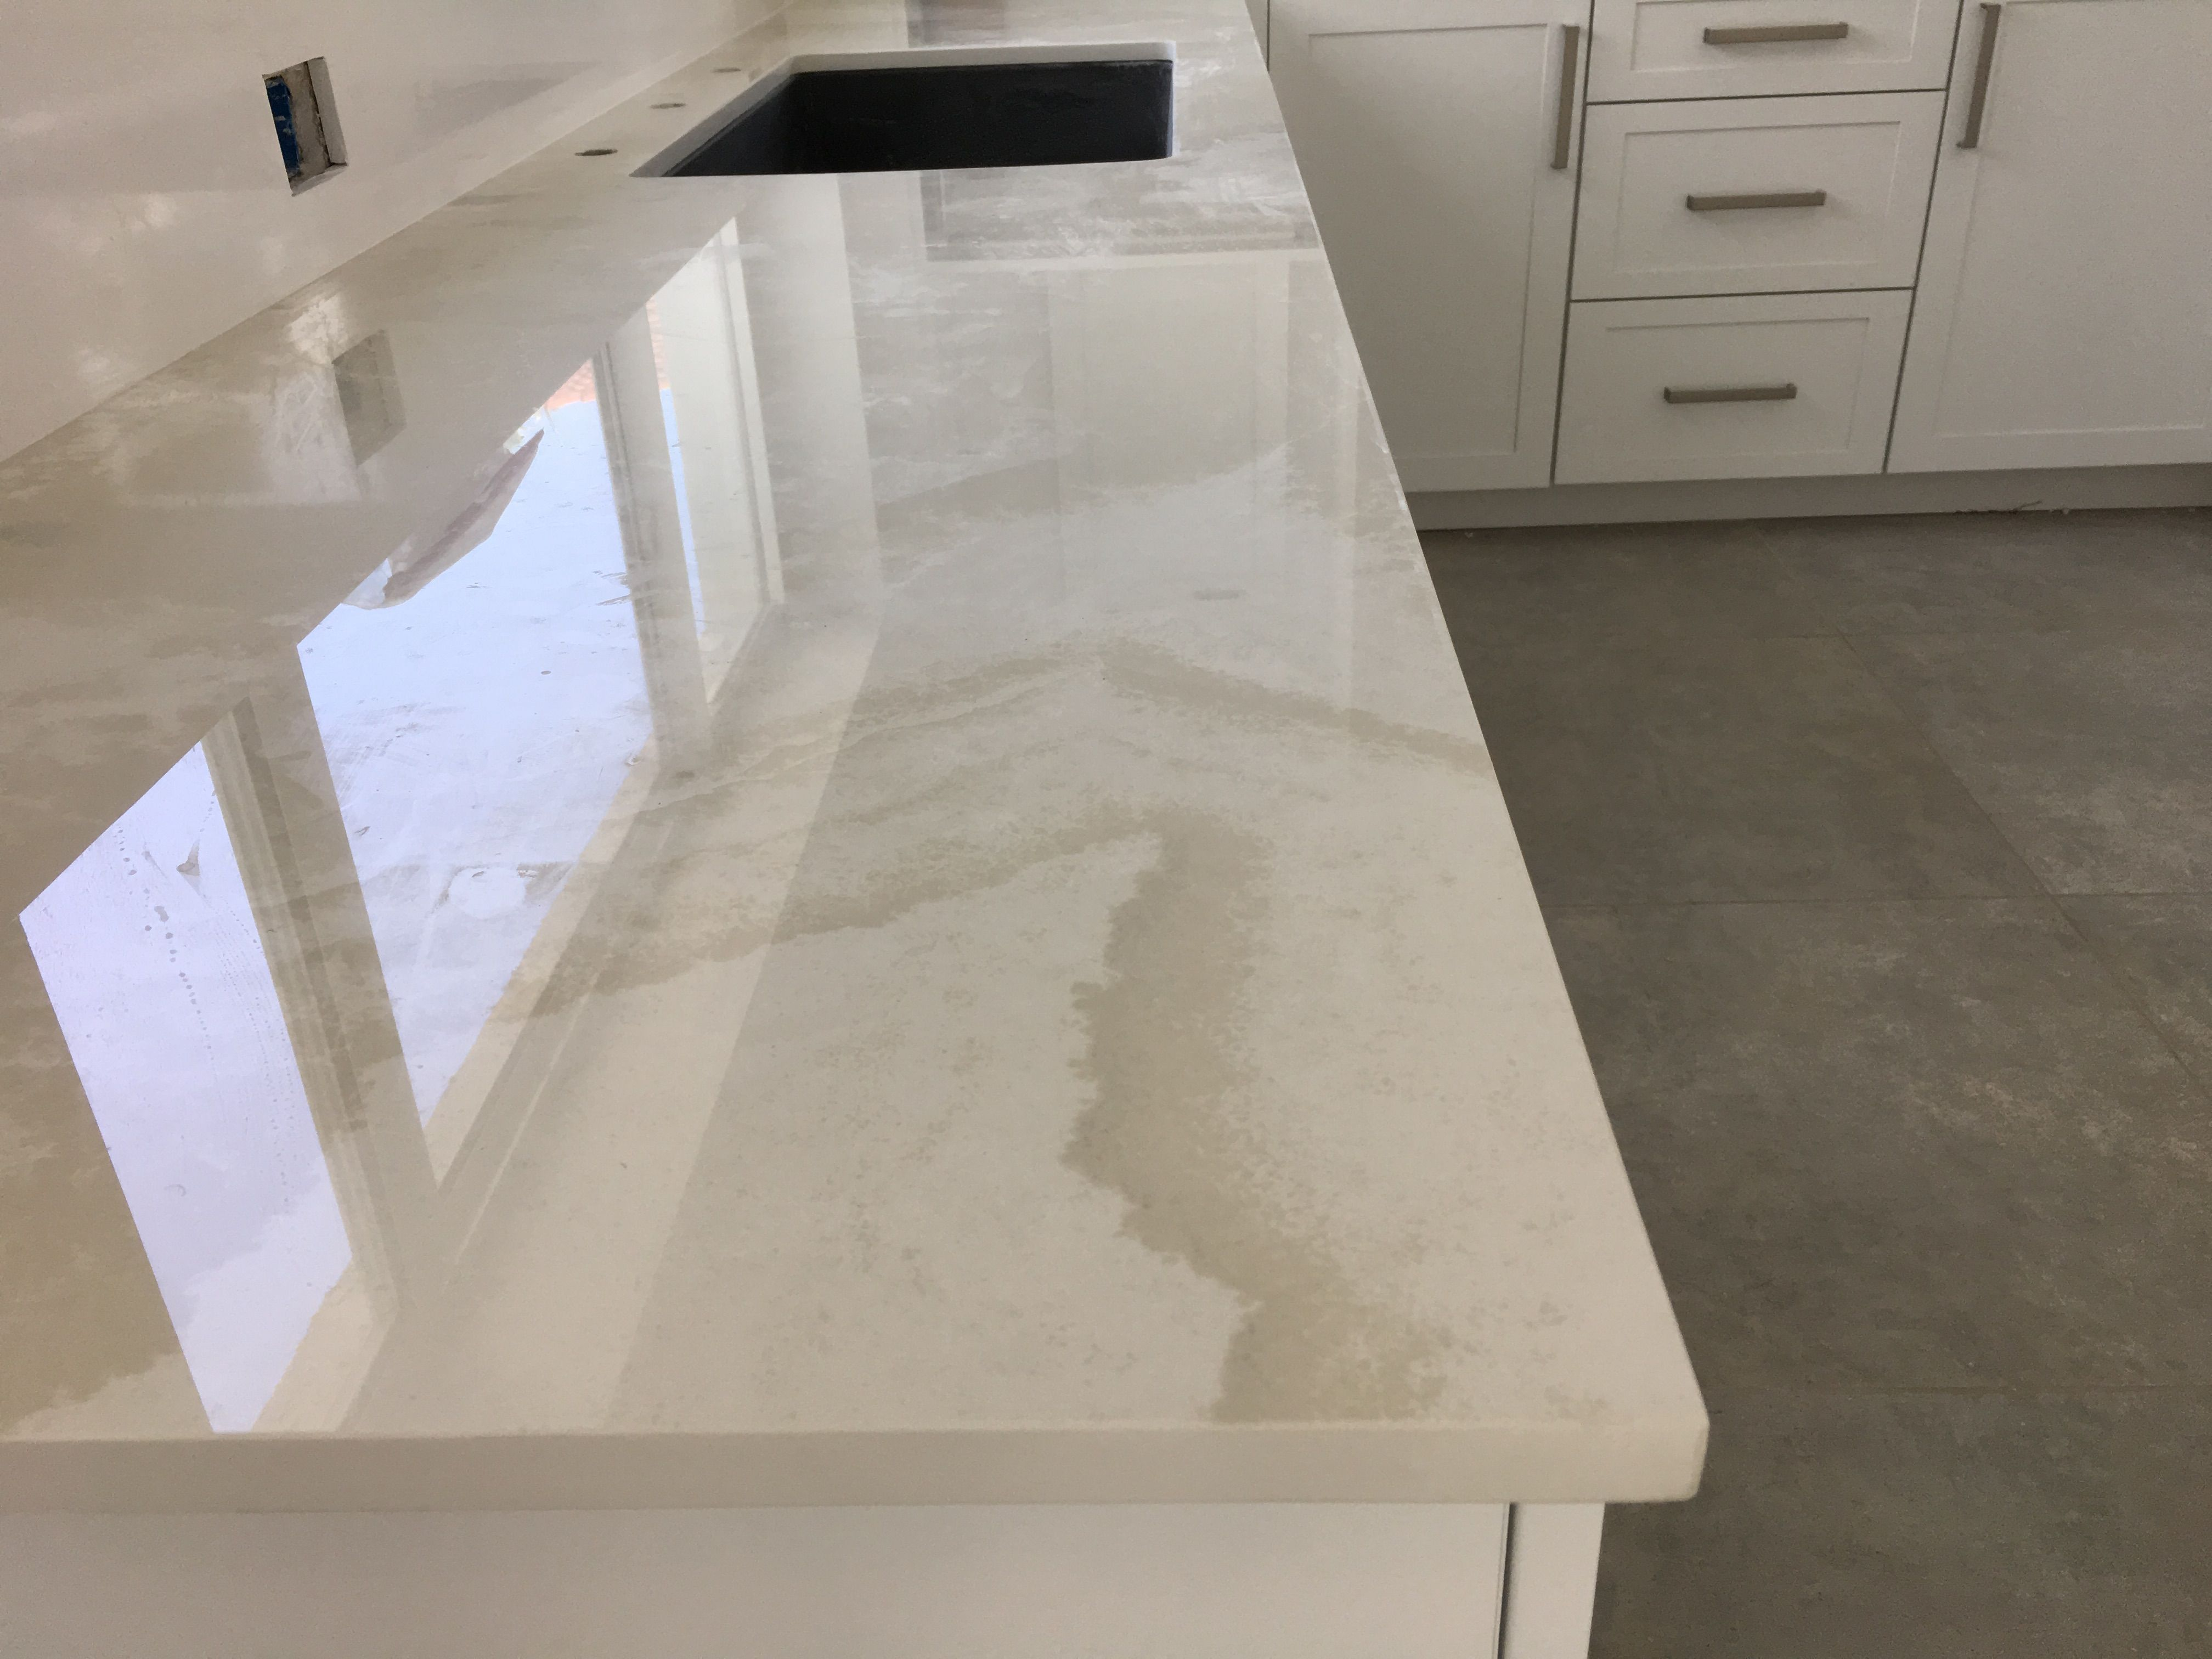 Fiord Xgloss Dekton Dekton Is Even More Resistant To Abrasion